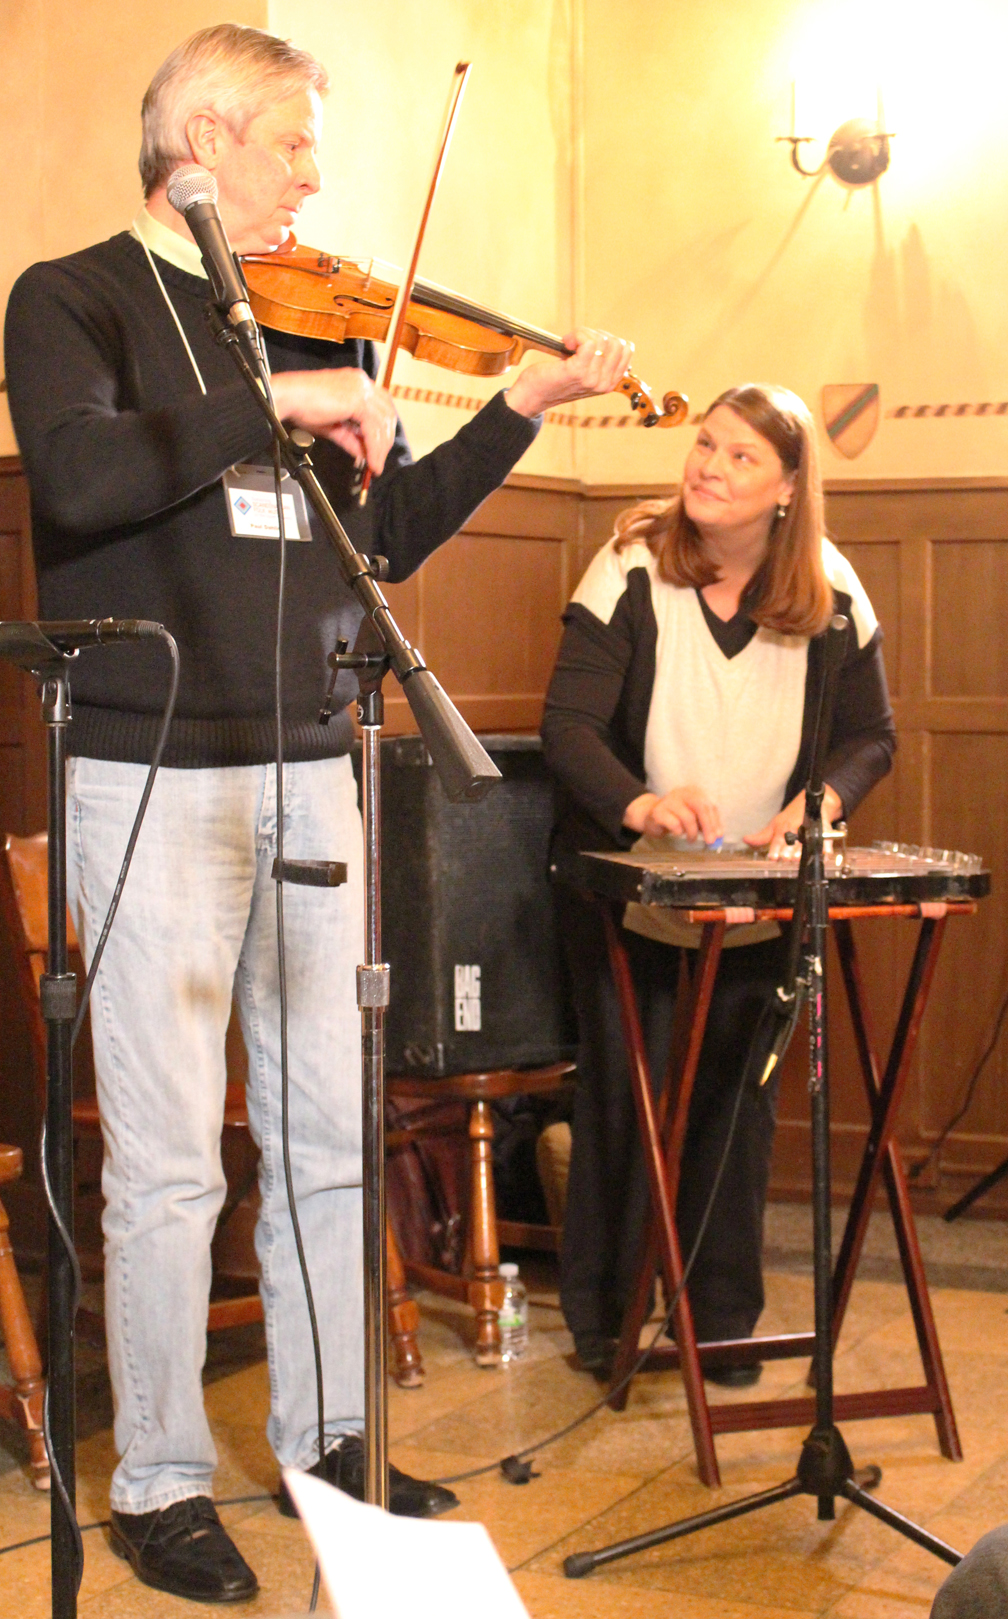 Paul and Marikay Dahlin perform at the University Club, Madison, WI